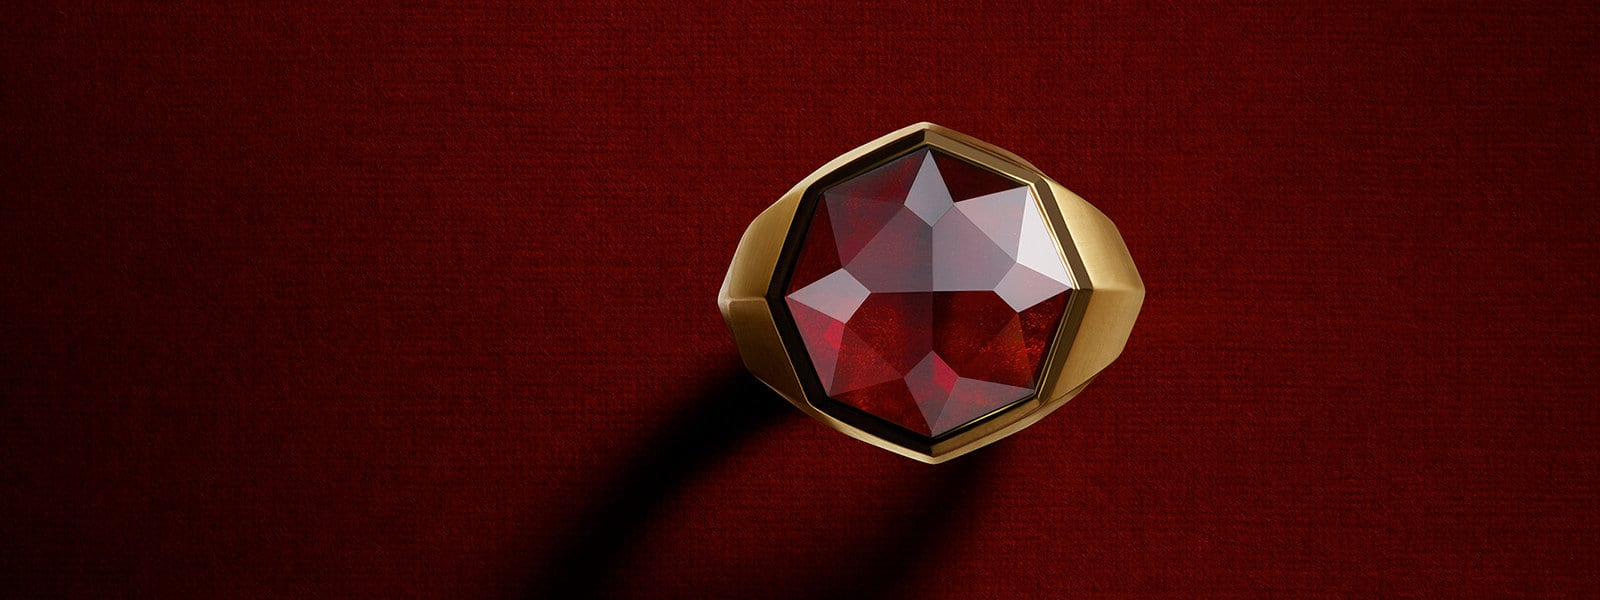 An aerial image of a men's DY Fortune faceted signet ring in 18K yellow gold with garnet, standing upright on a textured red surface.